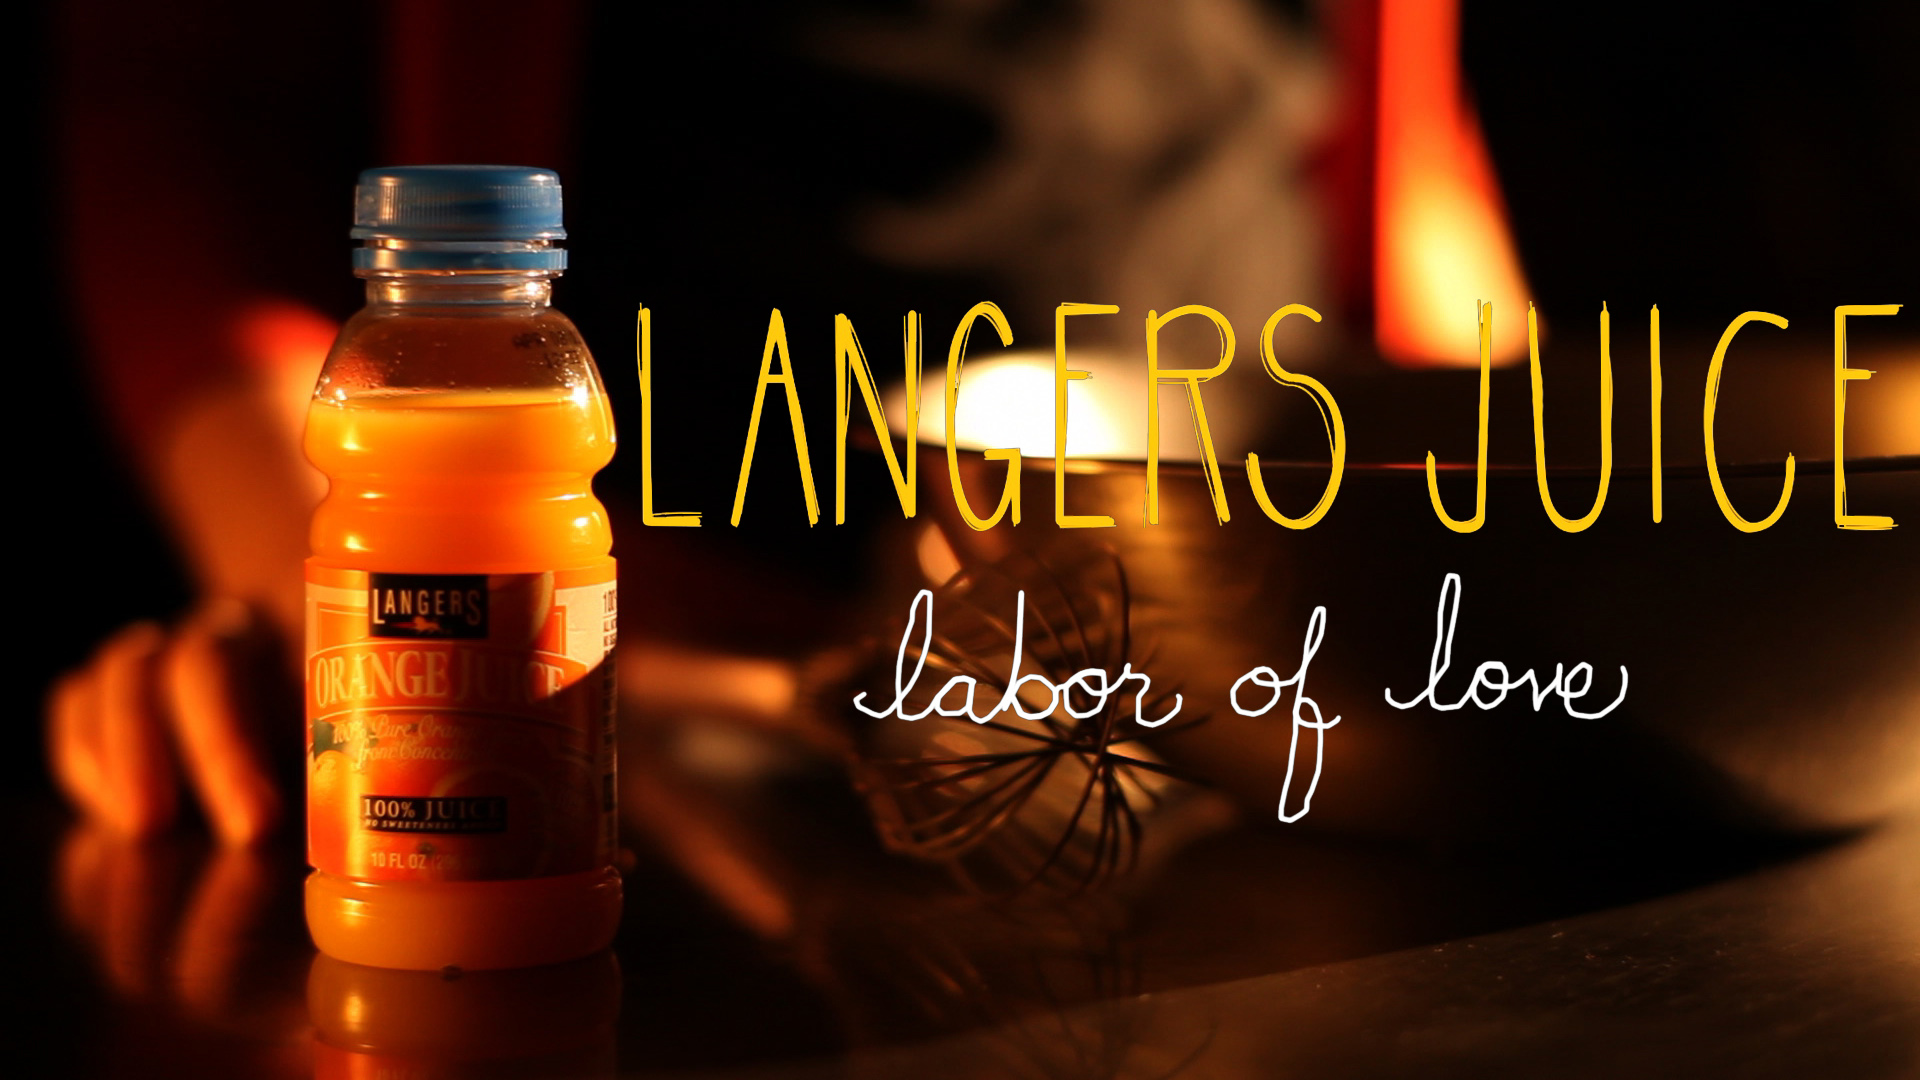 LA production company langers juice commercial